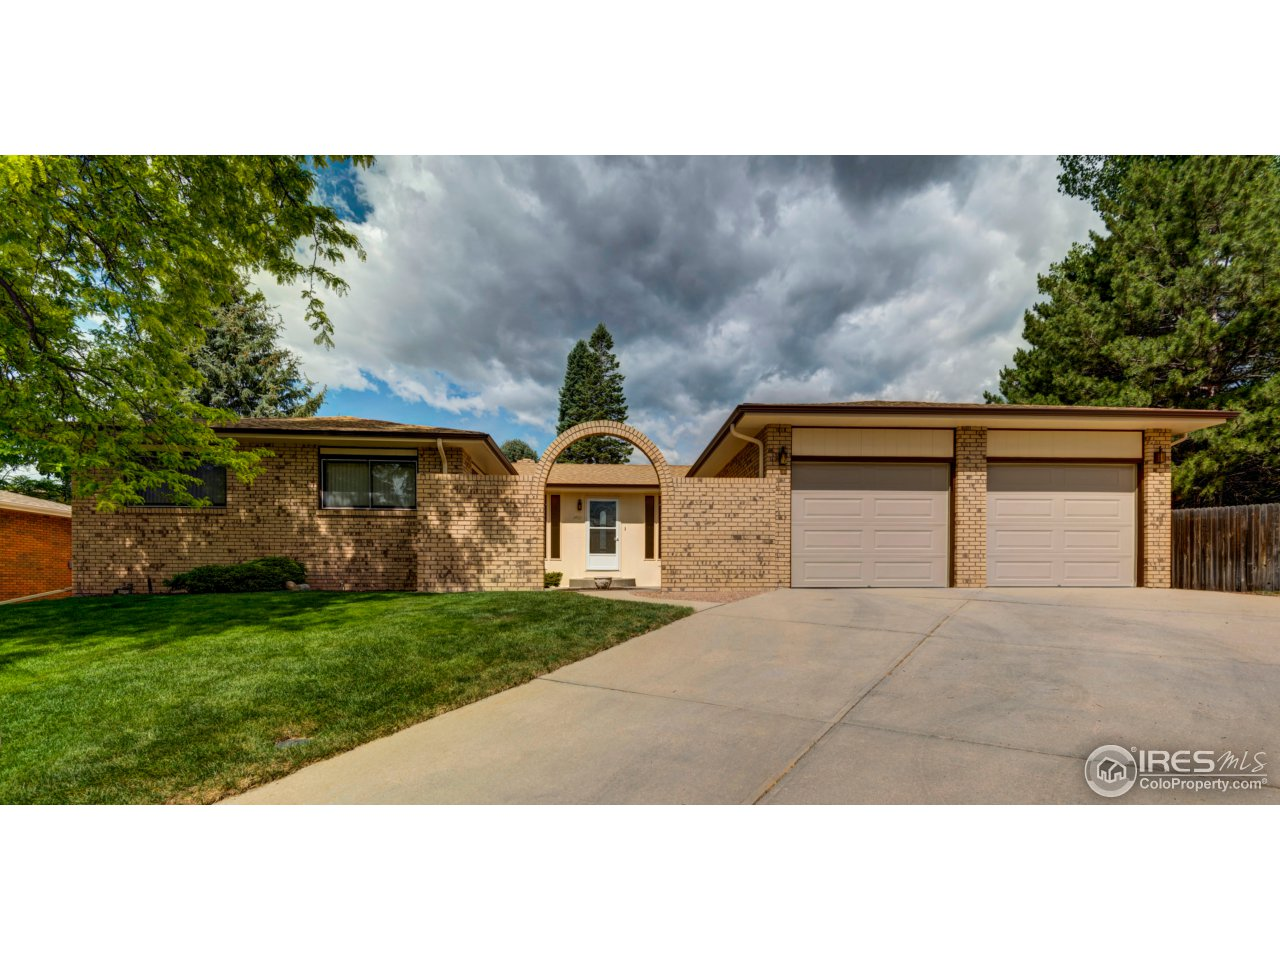 1409 44th Ave Ct, Greeley, CO 80634